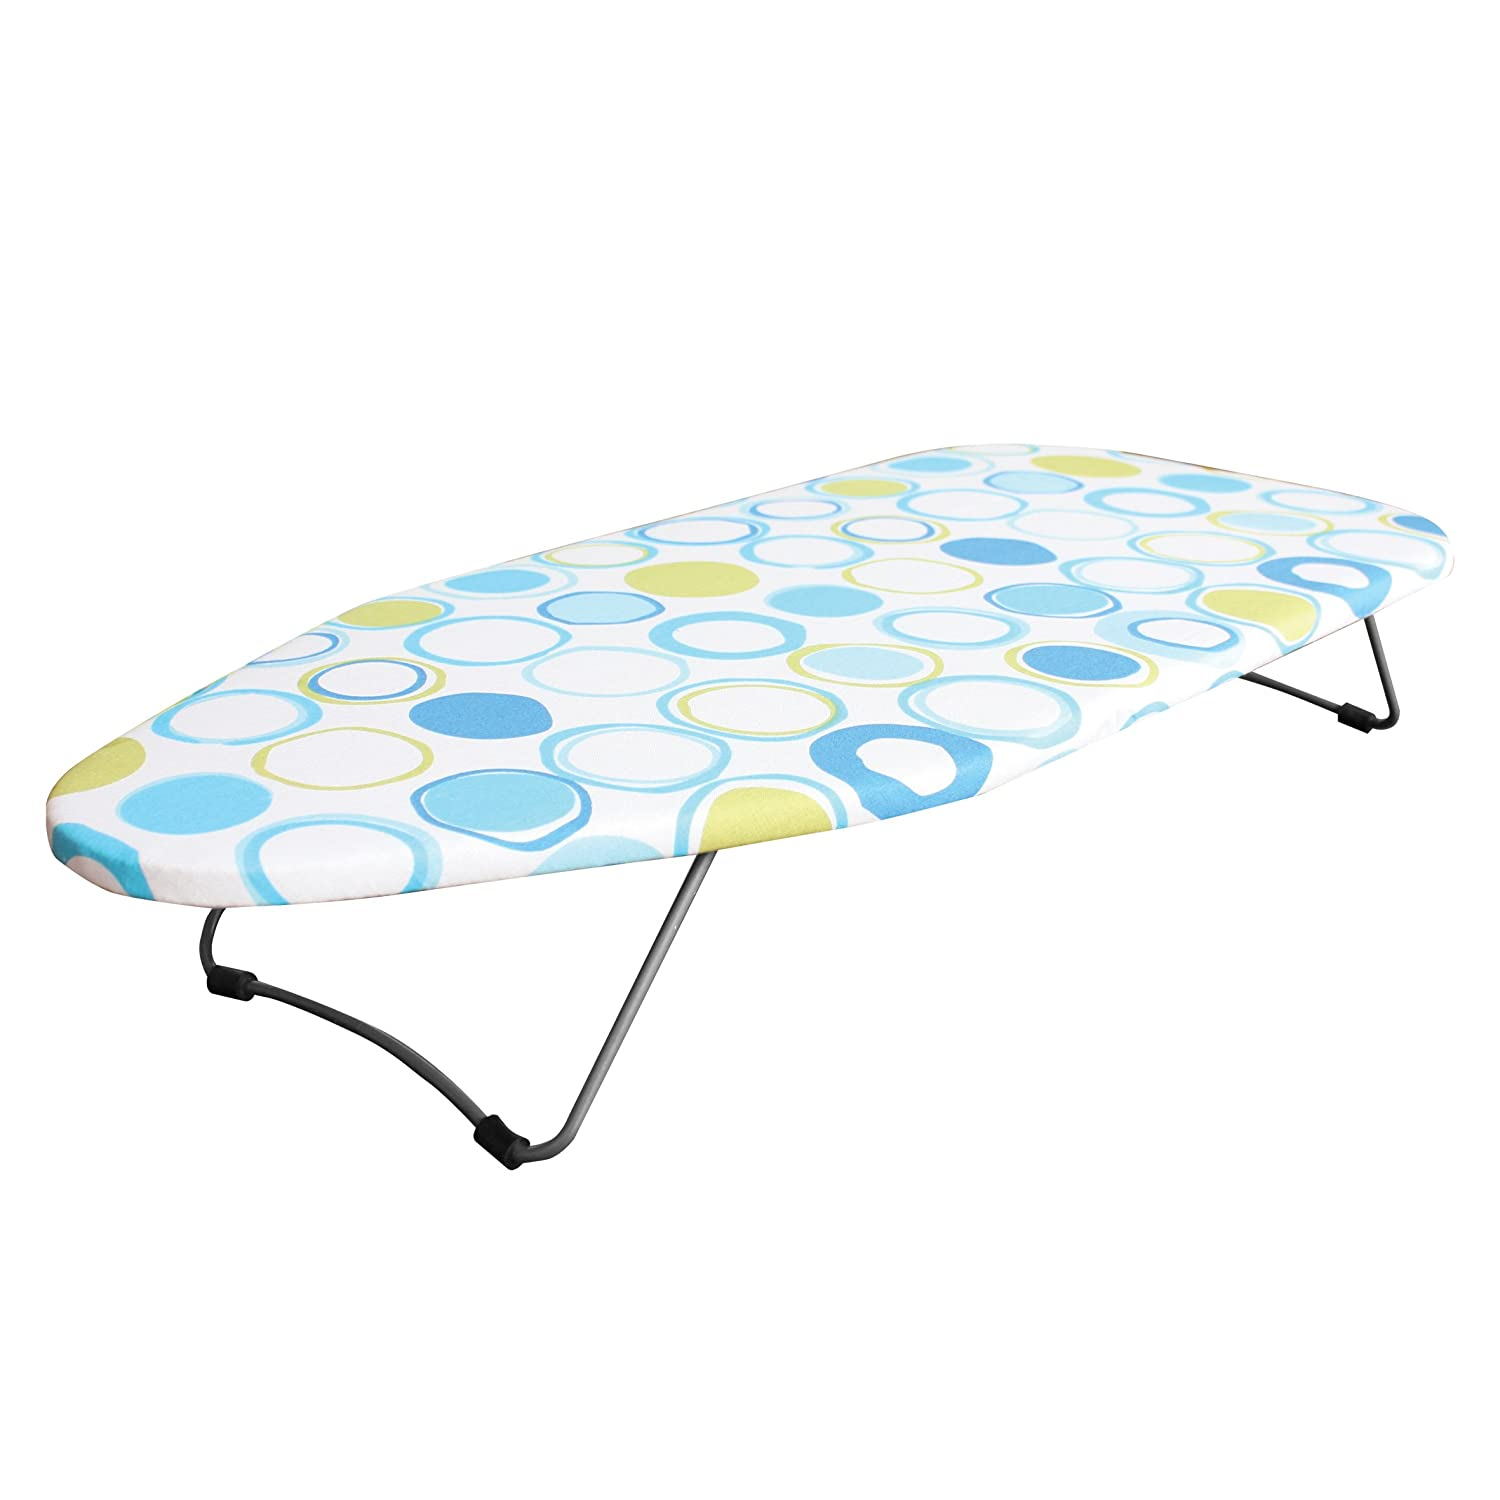 Amazon.com: Iron Worx 73 X 30 Cm Table Top Ironing Board By Iron Worx:  Appliances